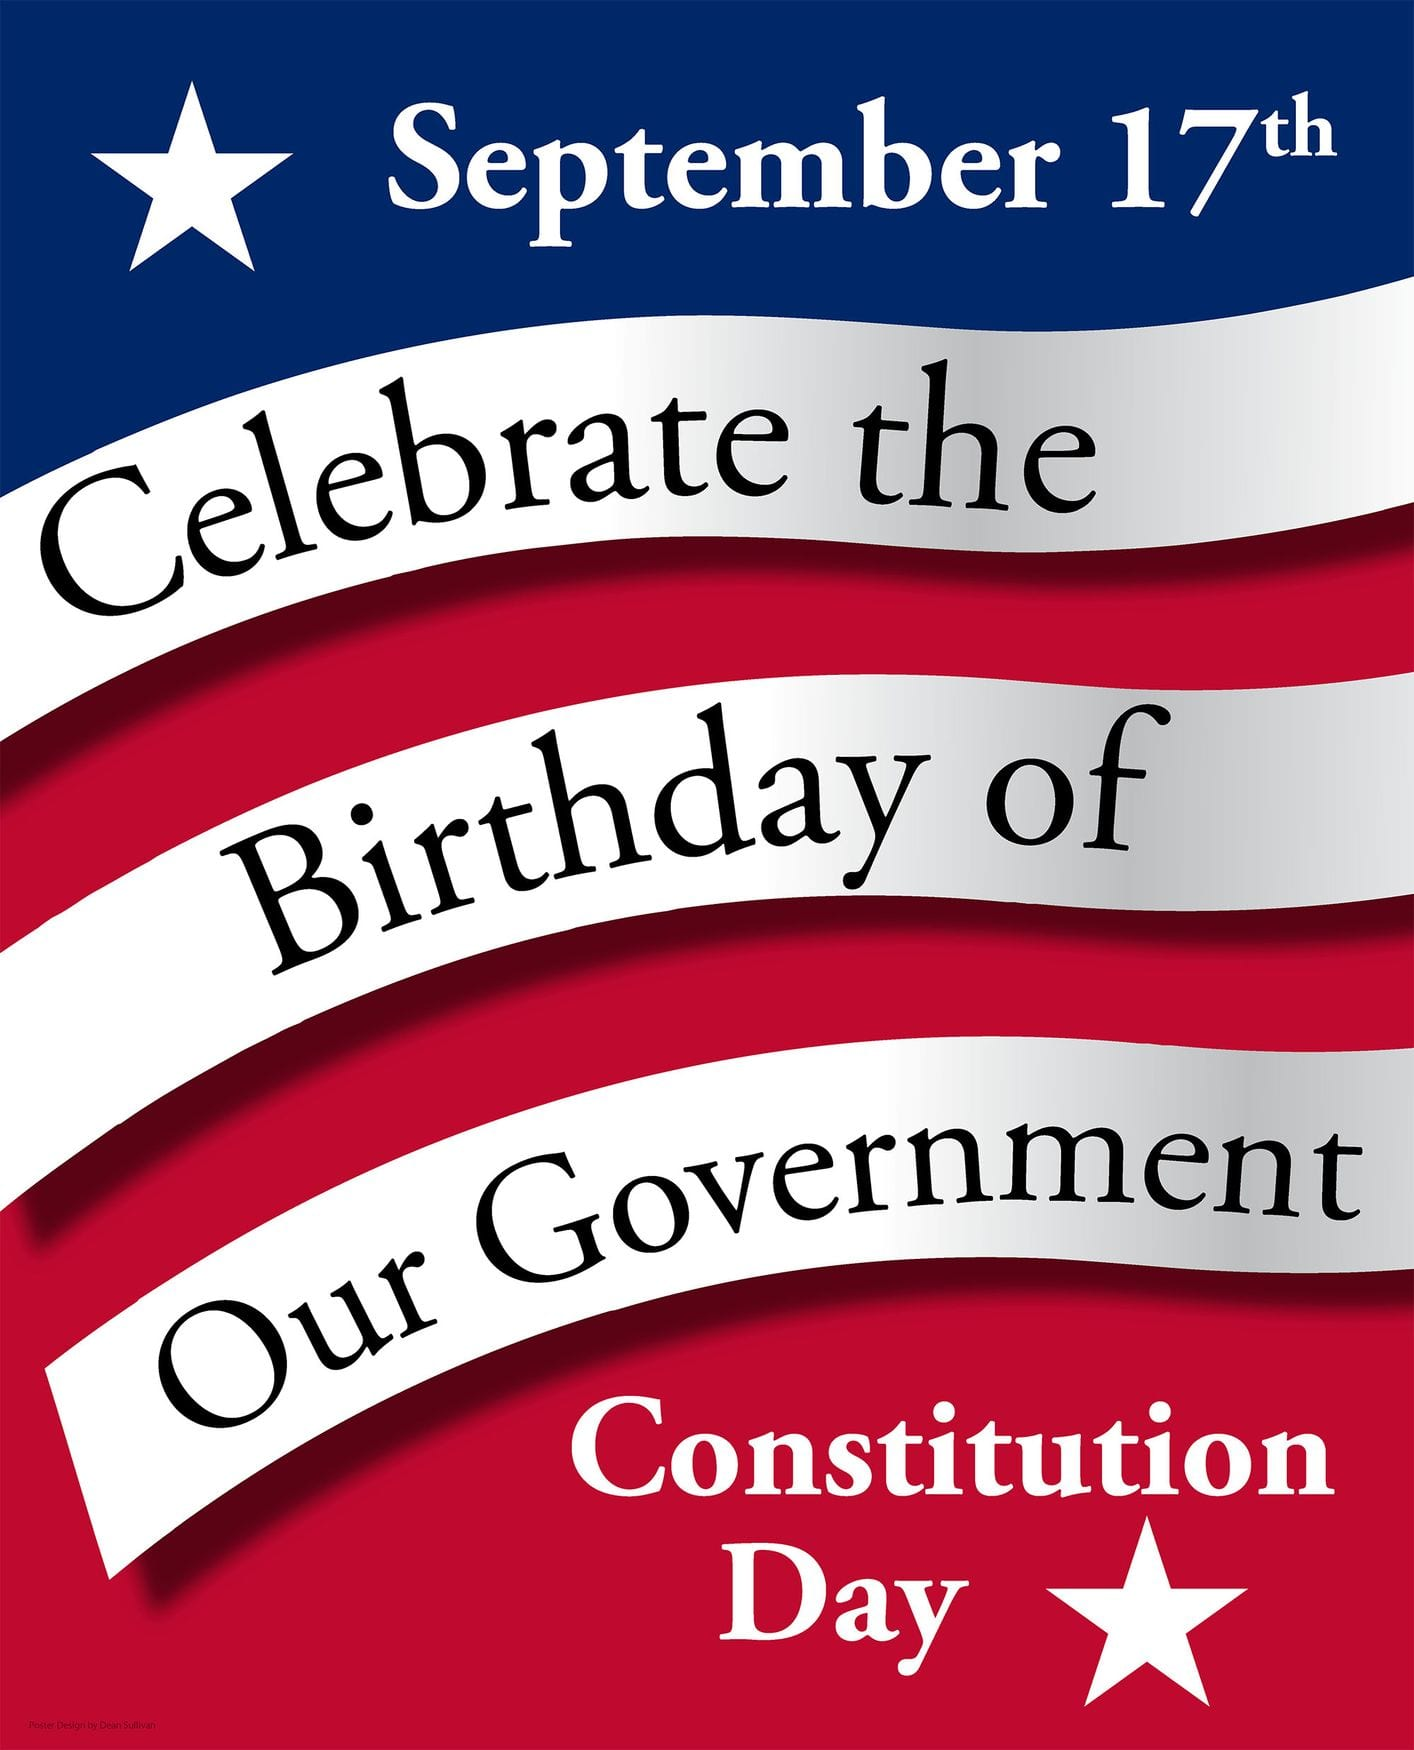 Constitution Day recognized by Laurus College